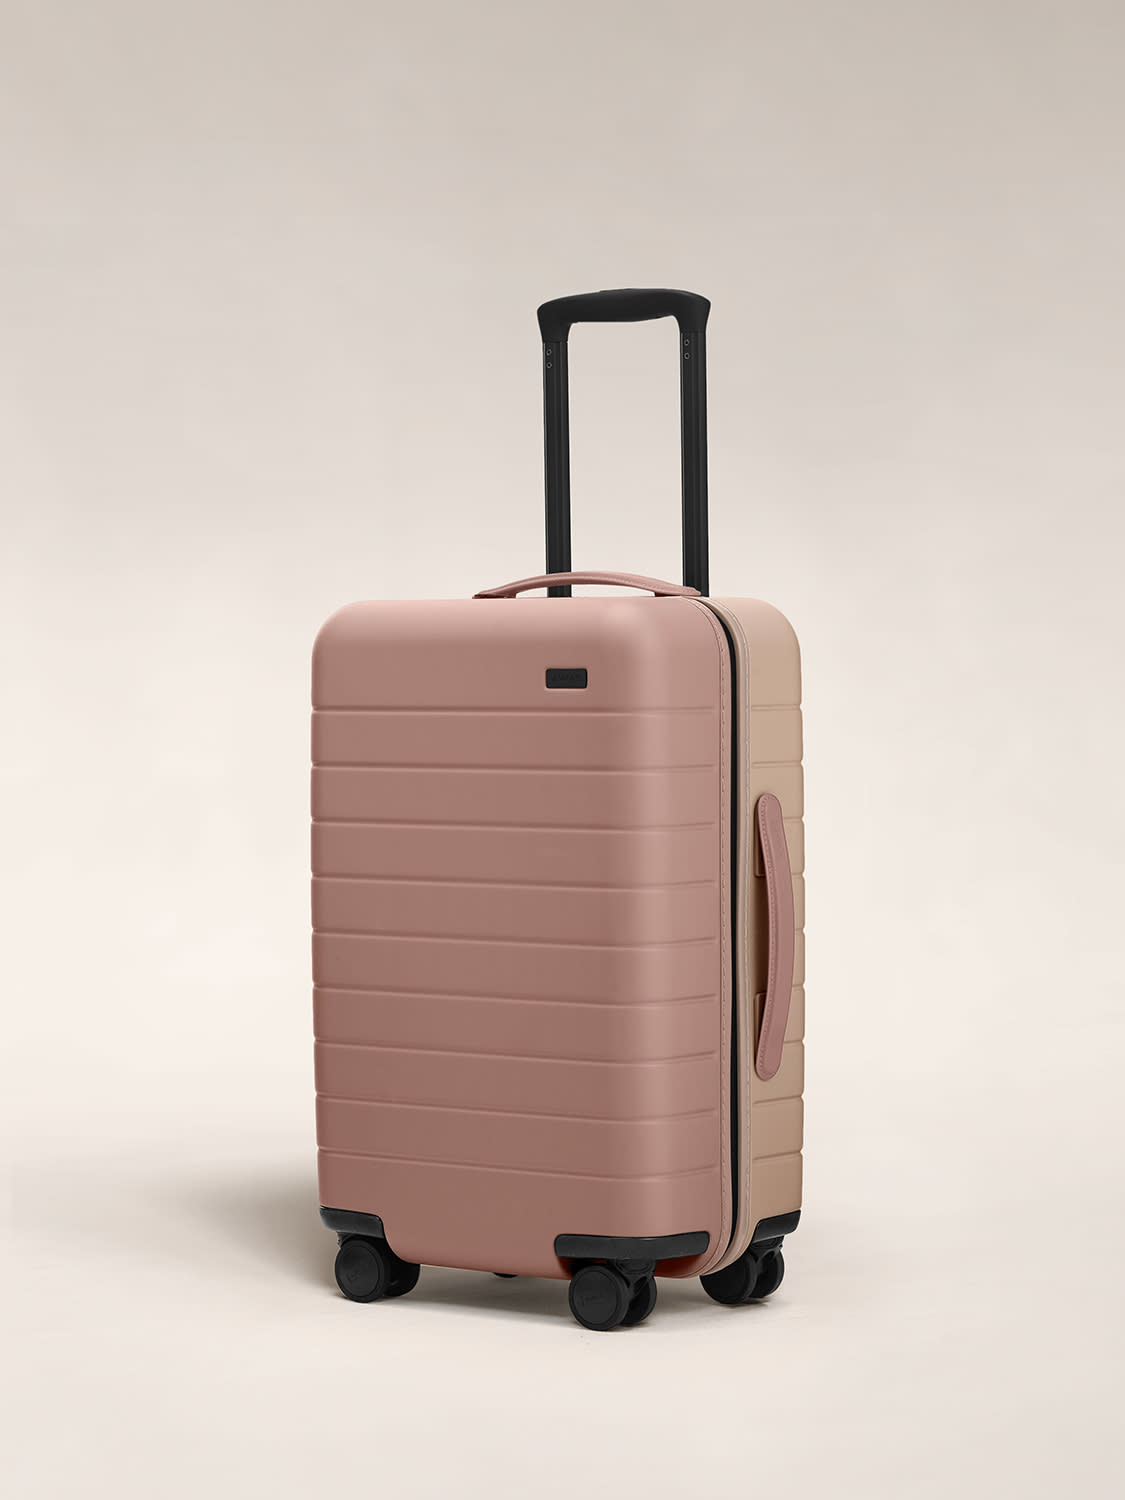 Angled view of The Carry On hardside suitcase in Dusty Rose/ Taupe